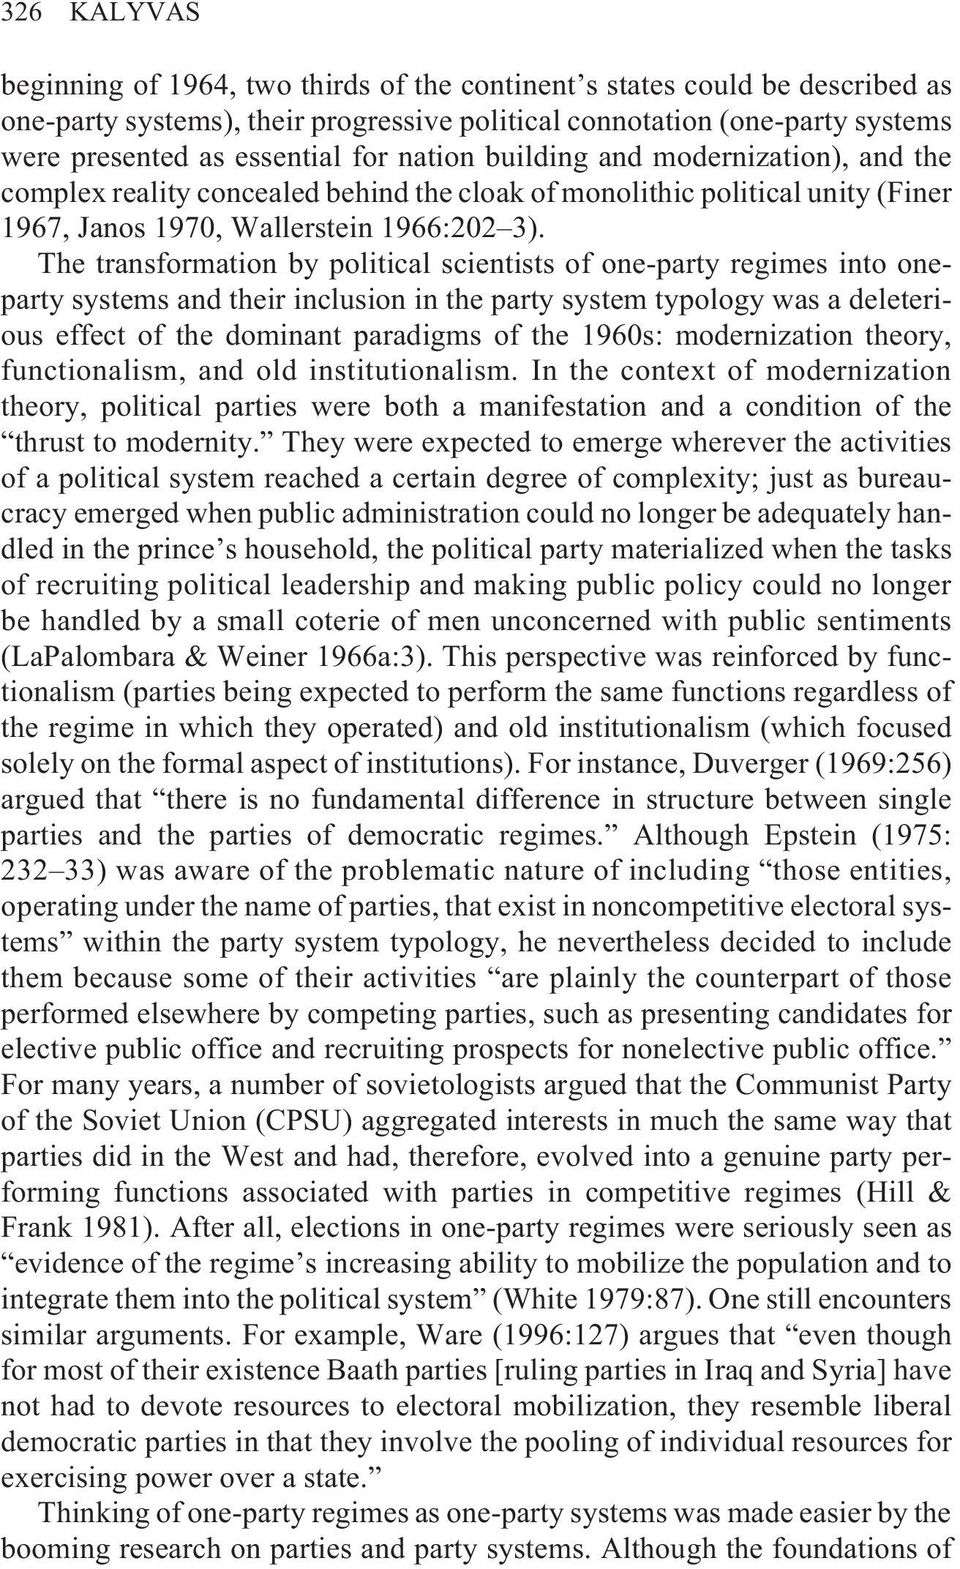 The transformation by political scientists of one-party regimes into oneparty systems and their inclusion in the party system typology was a deleterious effect of the dominant paradigms of the 1960s: